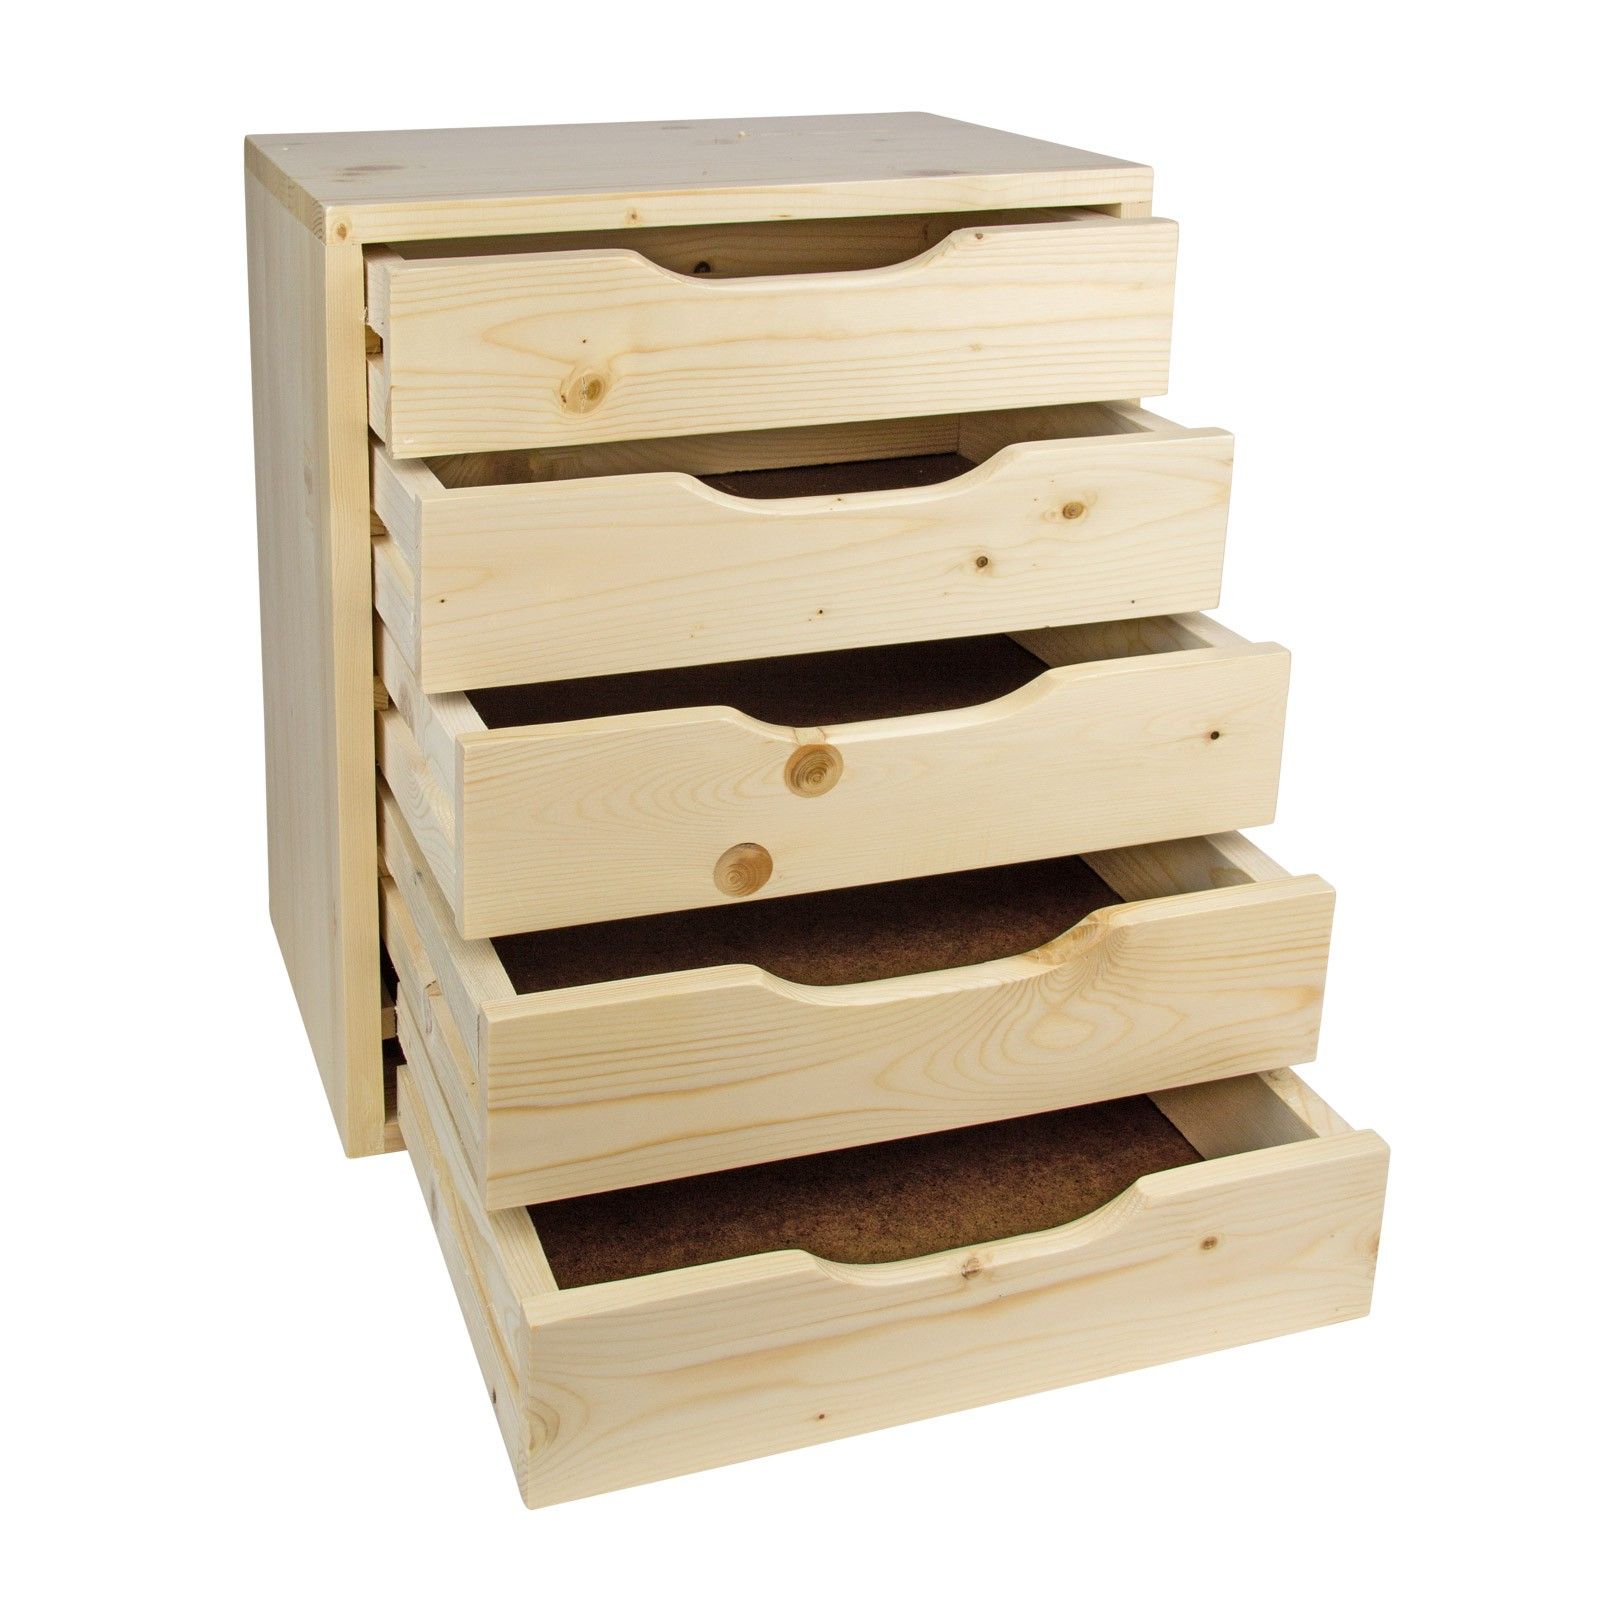 holz schubladenbox sb 3 4 5 6 schubladen. Black Bedroom Furniture Sets. Home Design Ideas